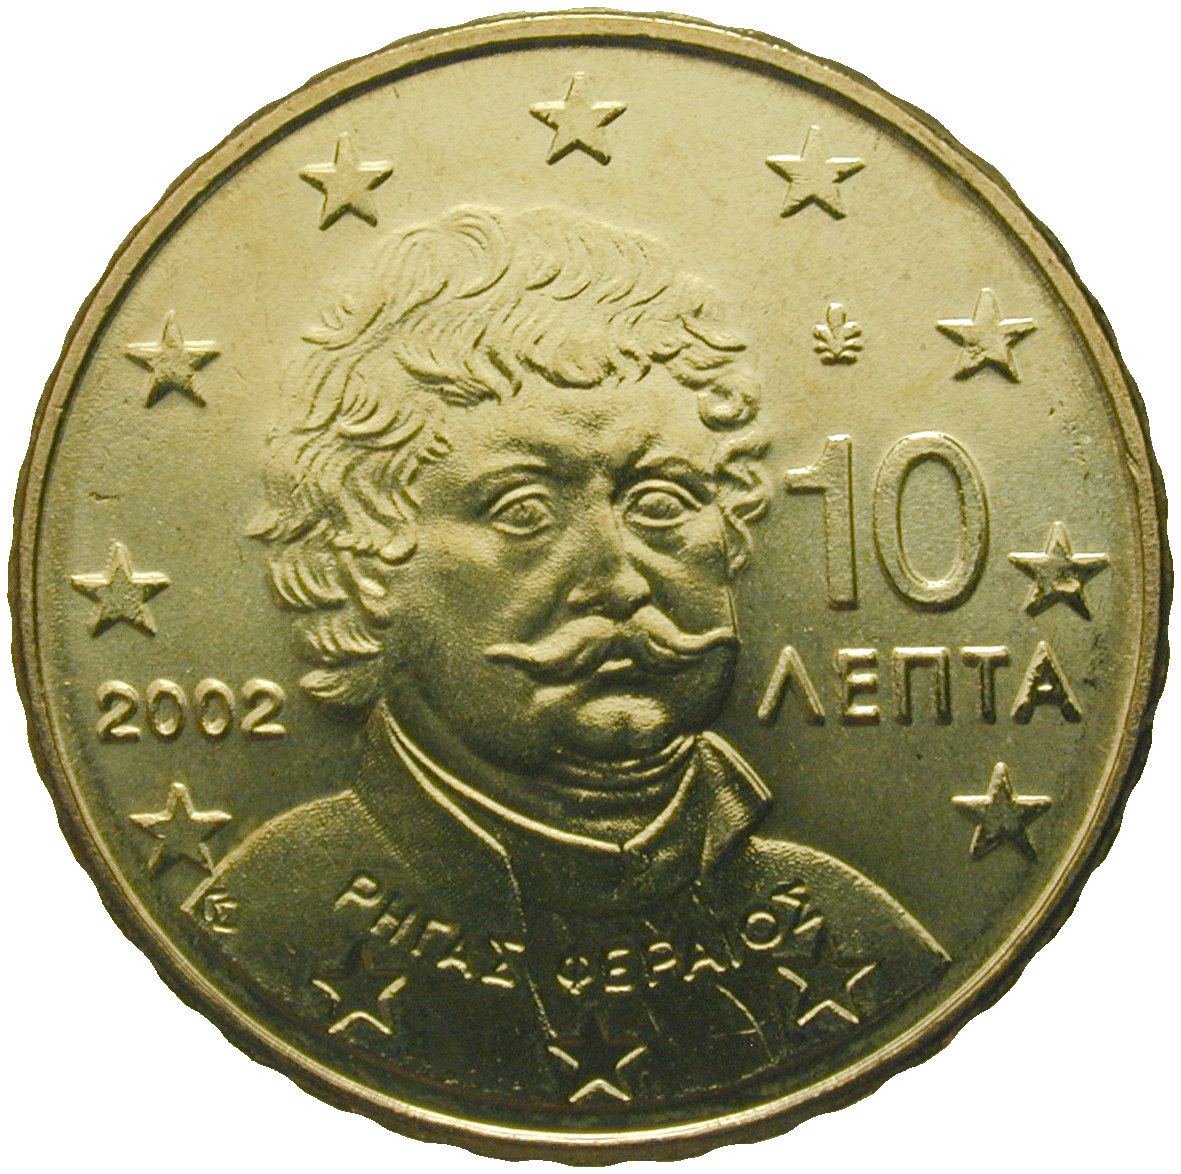 Republic of Greece, 10 Euro Cent 2002 (obverse)